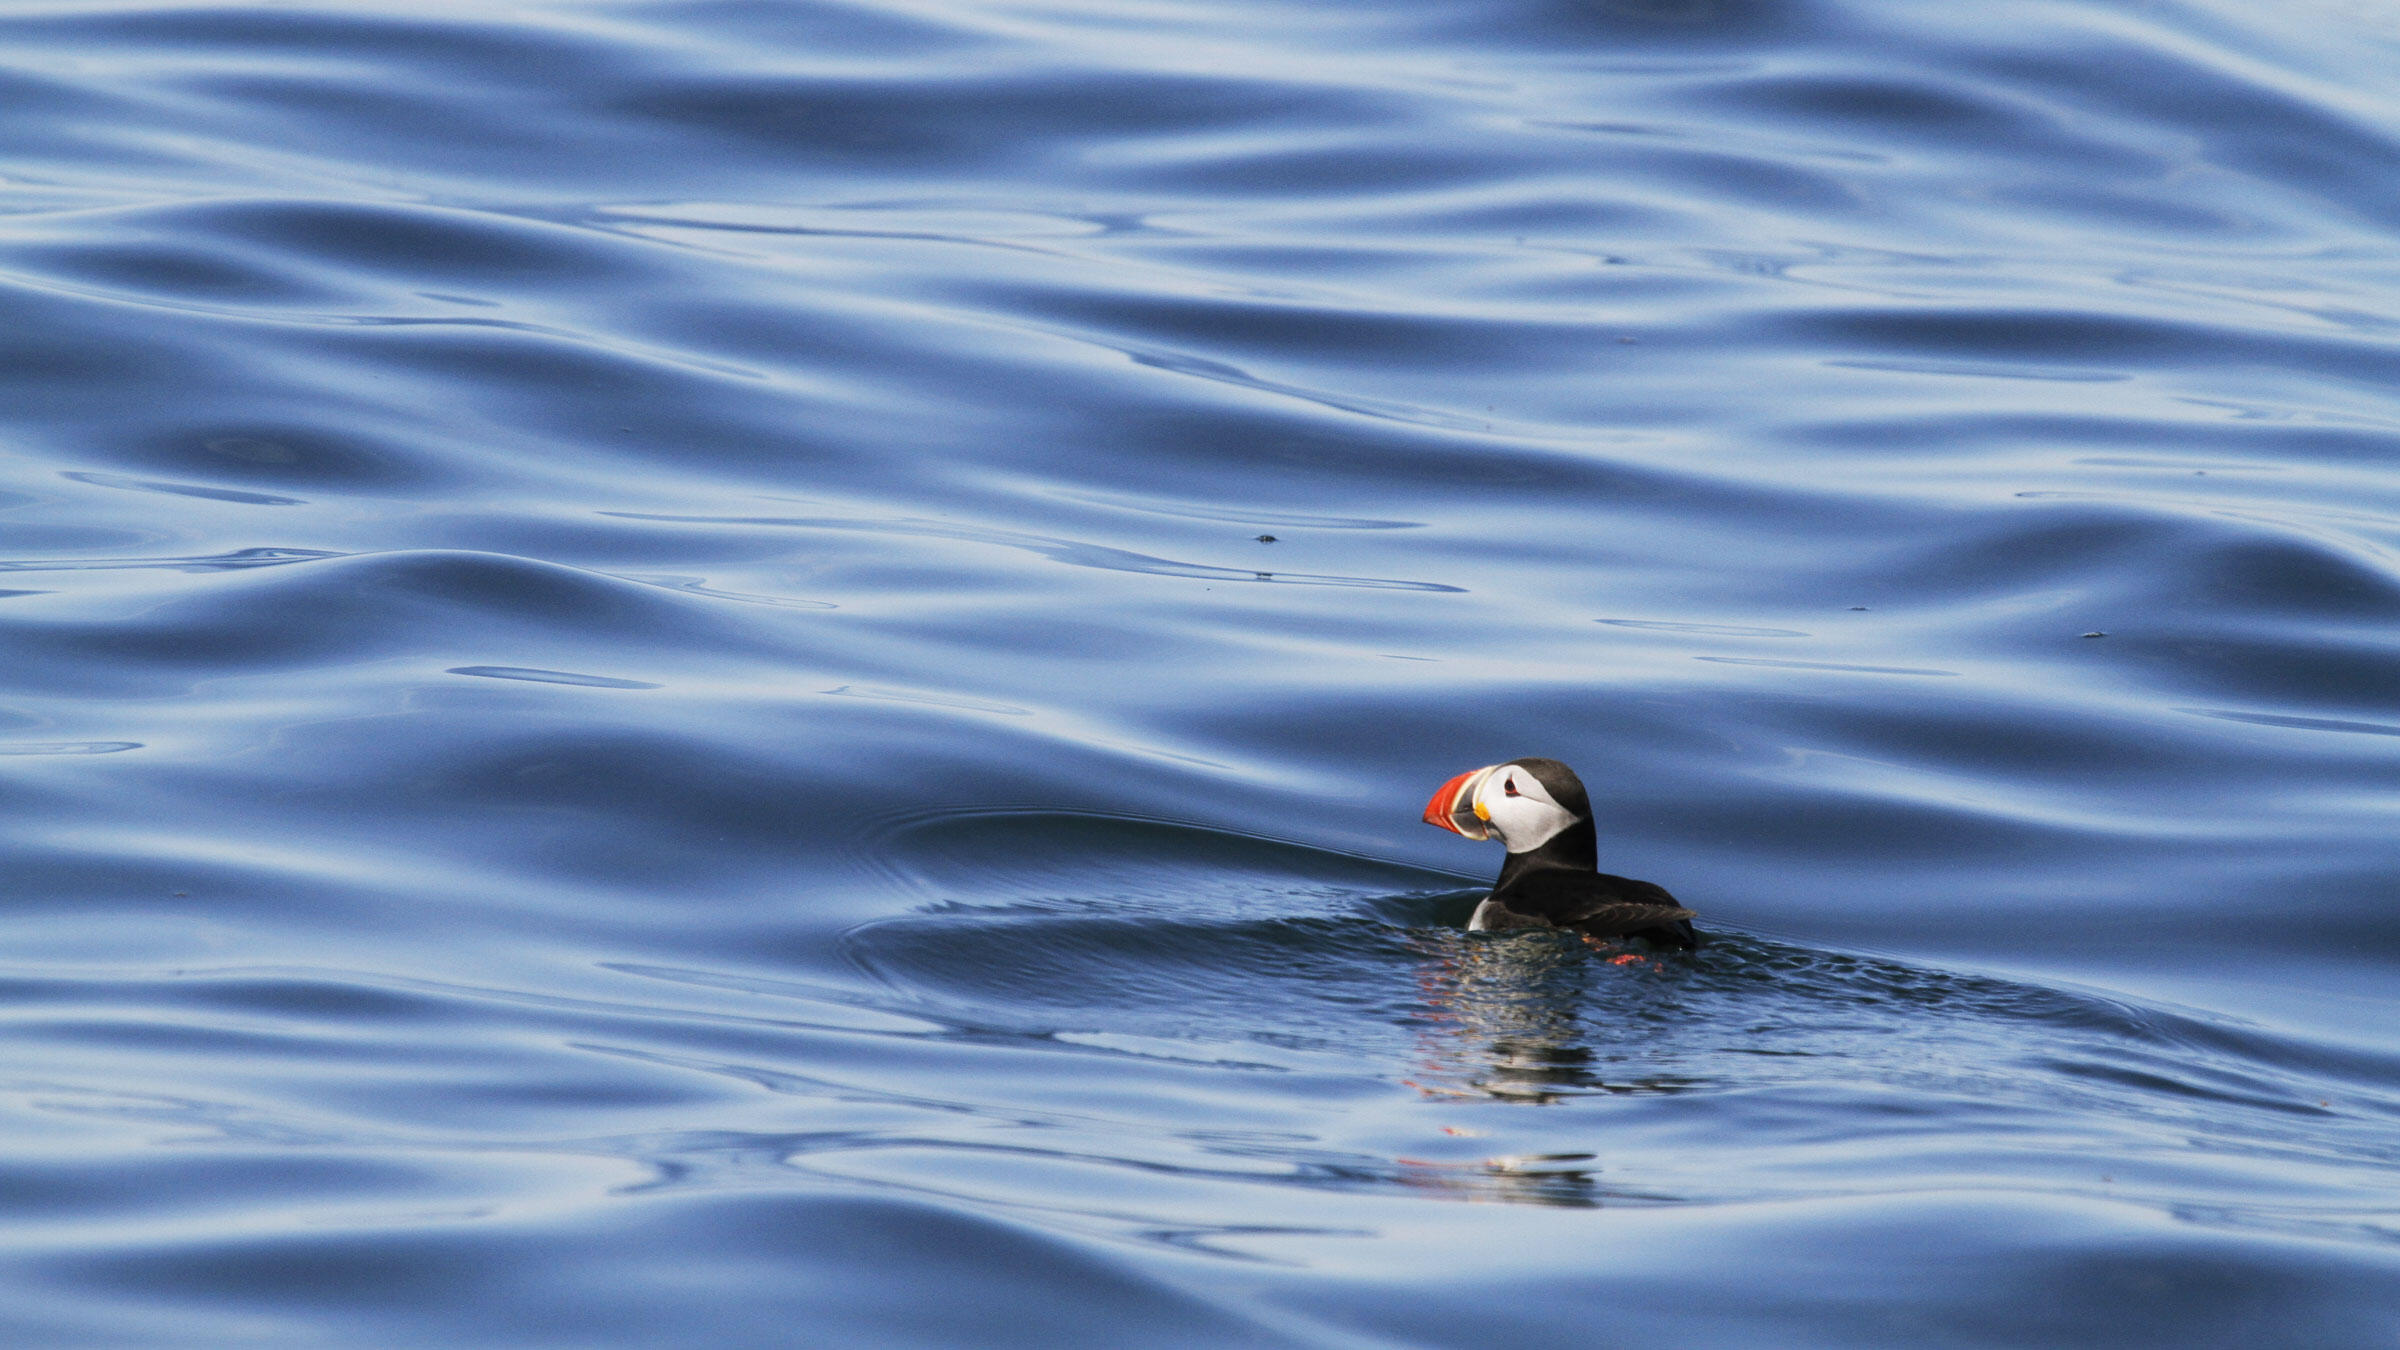 Adult Atlantic Puffins can spend up to eight months on the waves, never touching land as they sleep, eat, and drink out at sea. Stephen Kress